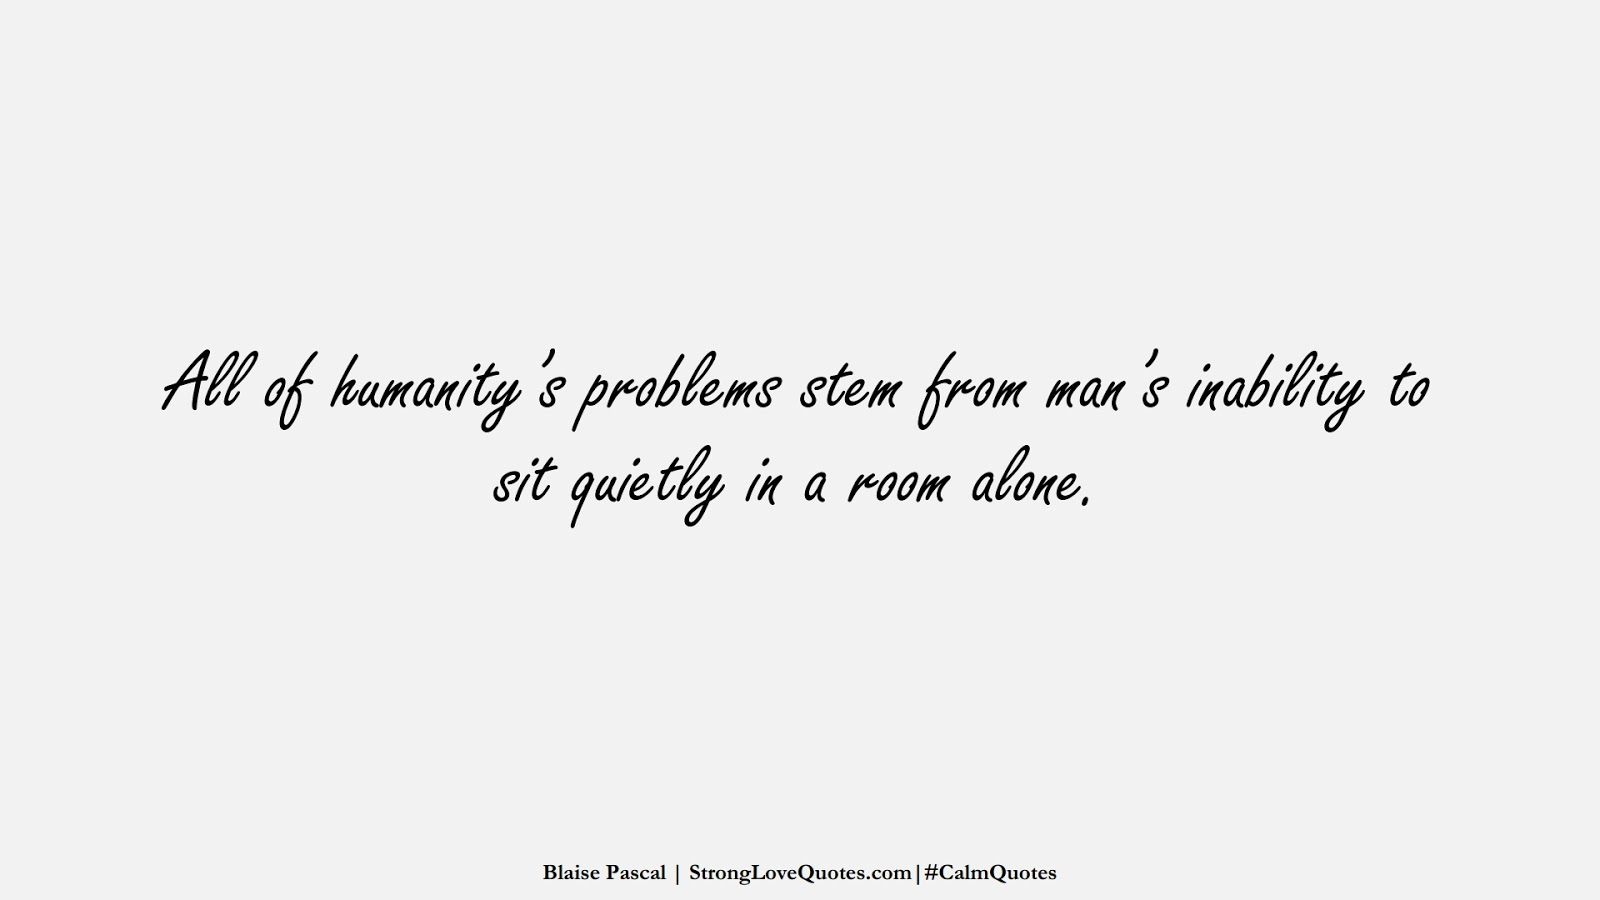 All of humanity's problems stem from man's inability to sit quietly in a room alone. (Blaise Pascal);  #CalmQuotes